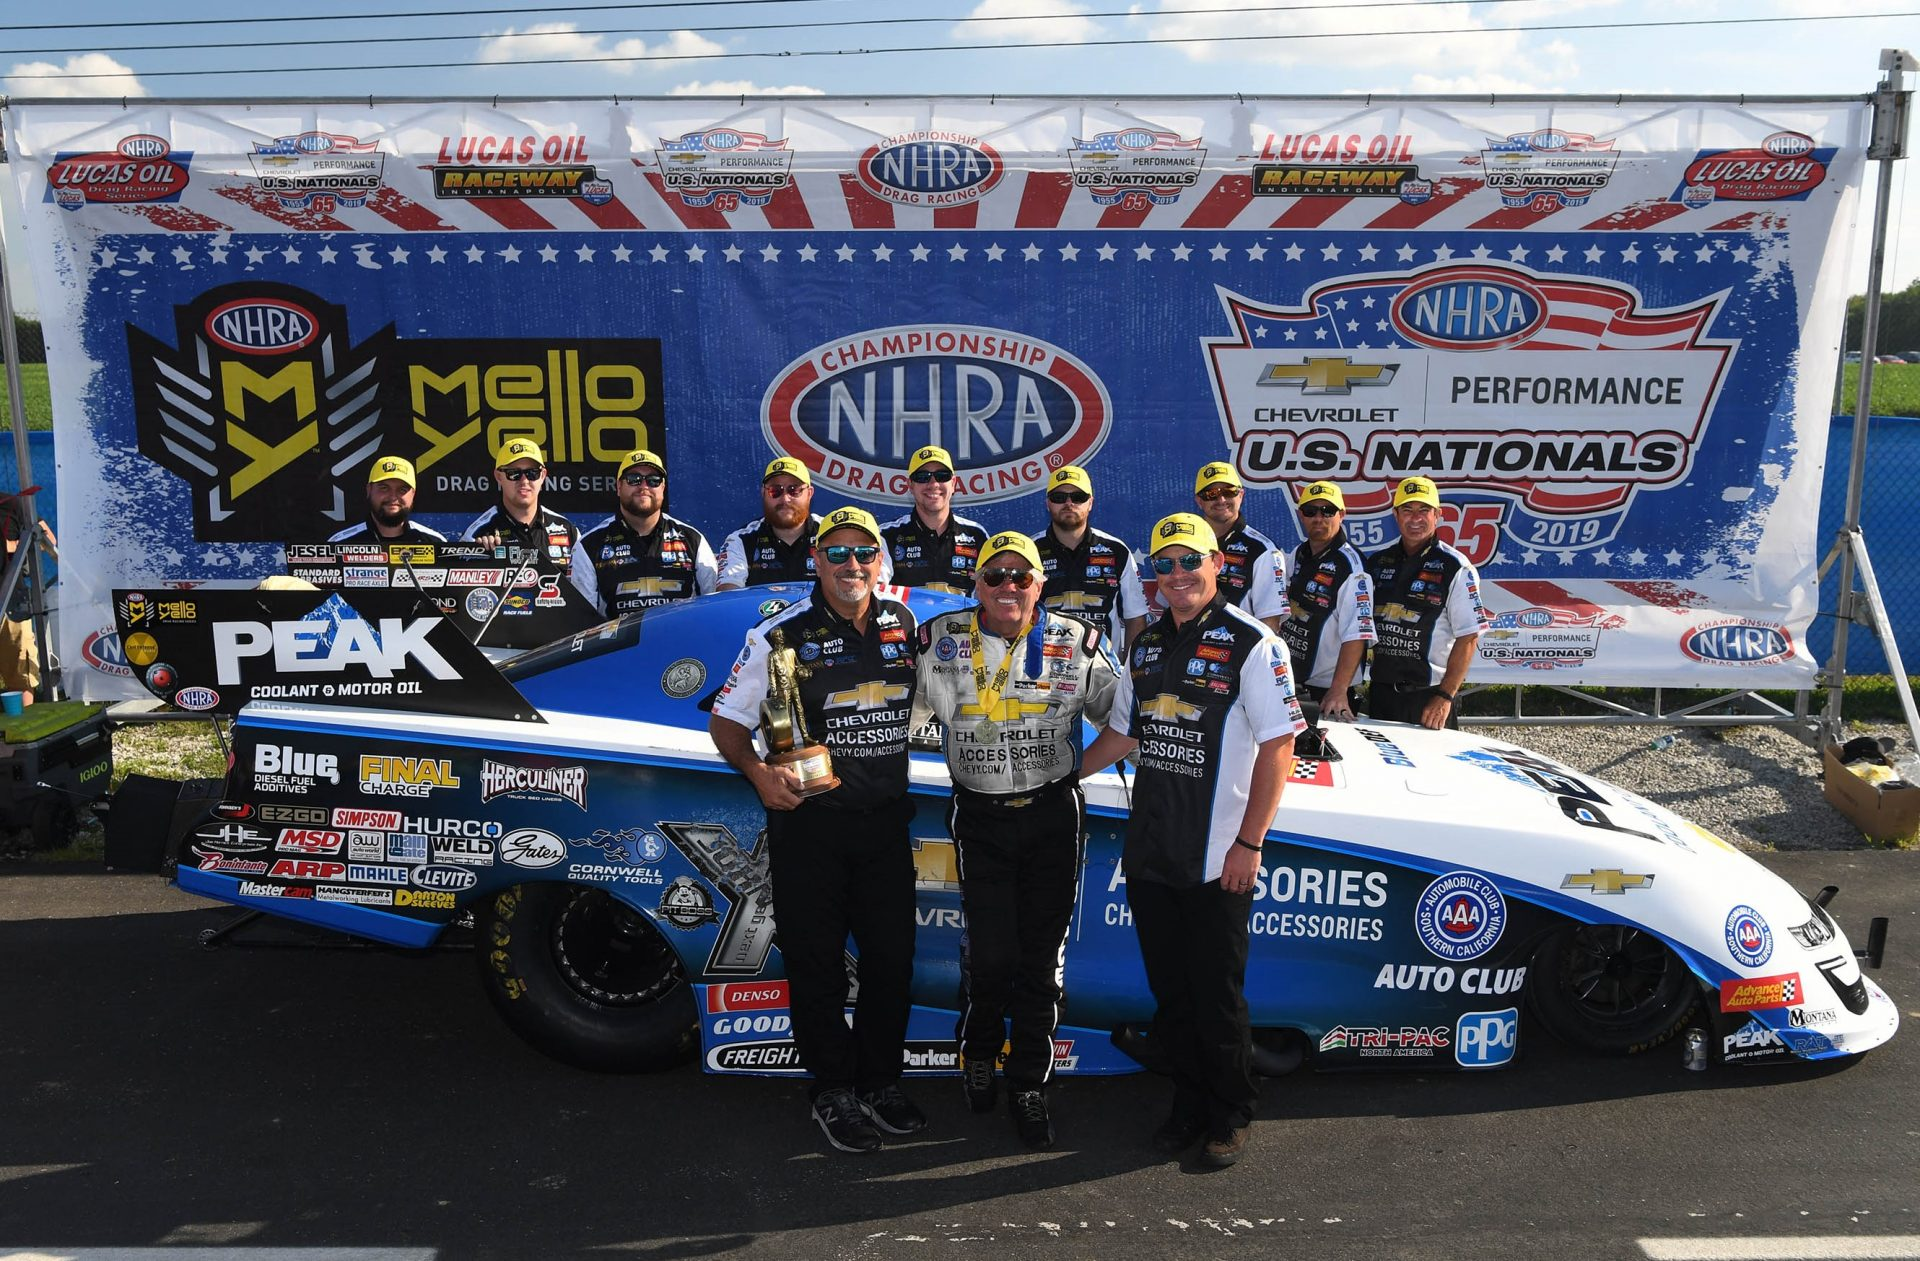 JOHN FORCE AND PEAK CHEVROLET PERFORMANCE ACCESSORIES TEAM